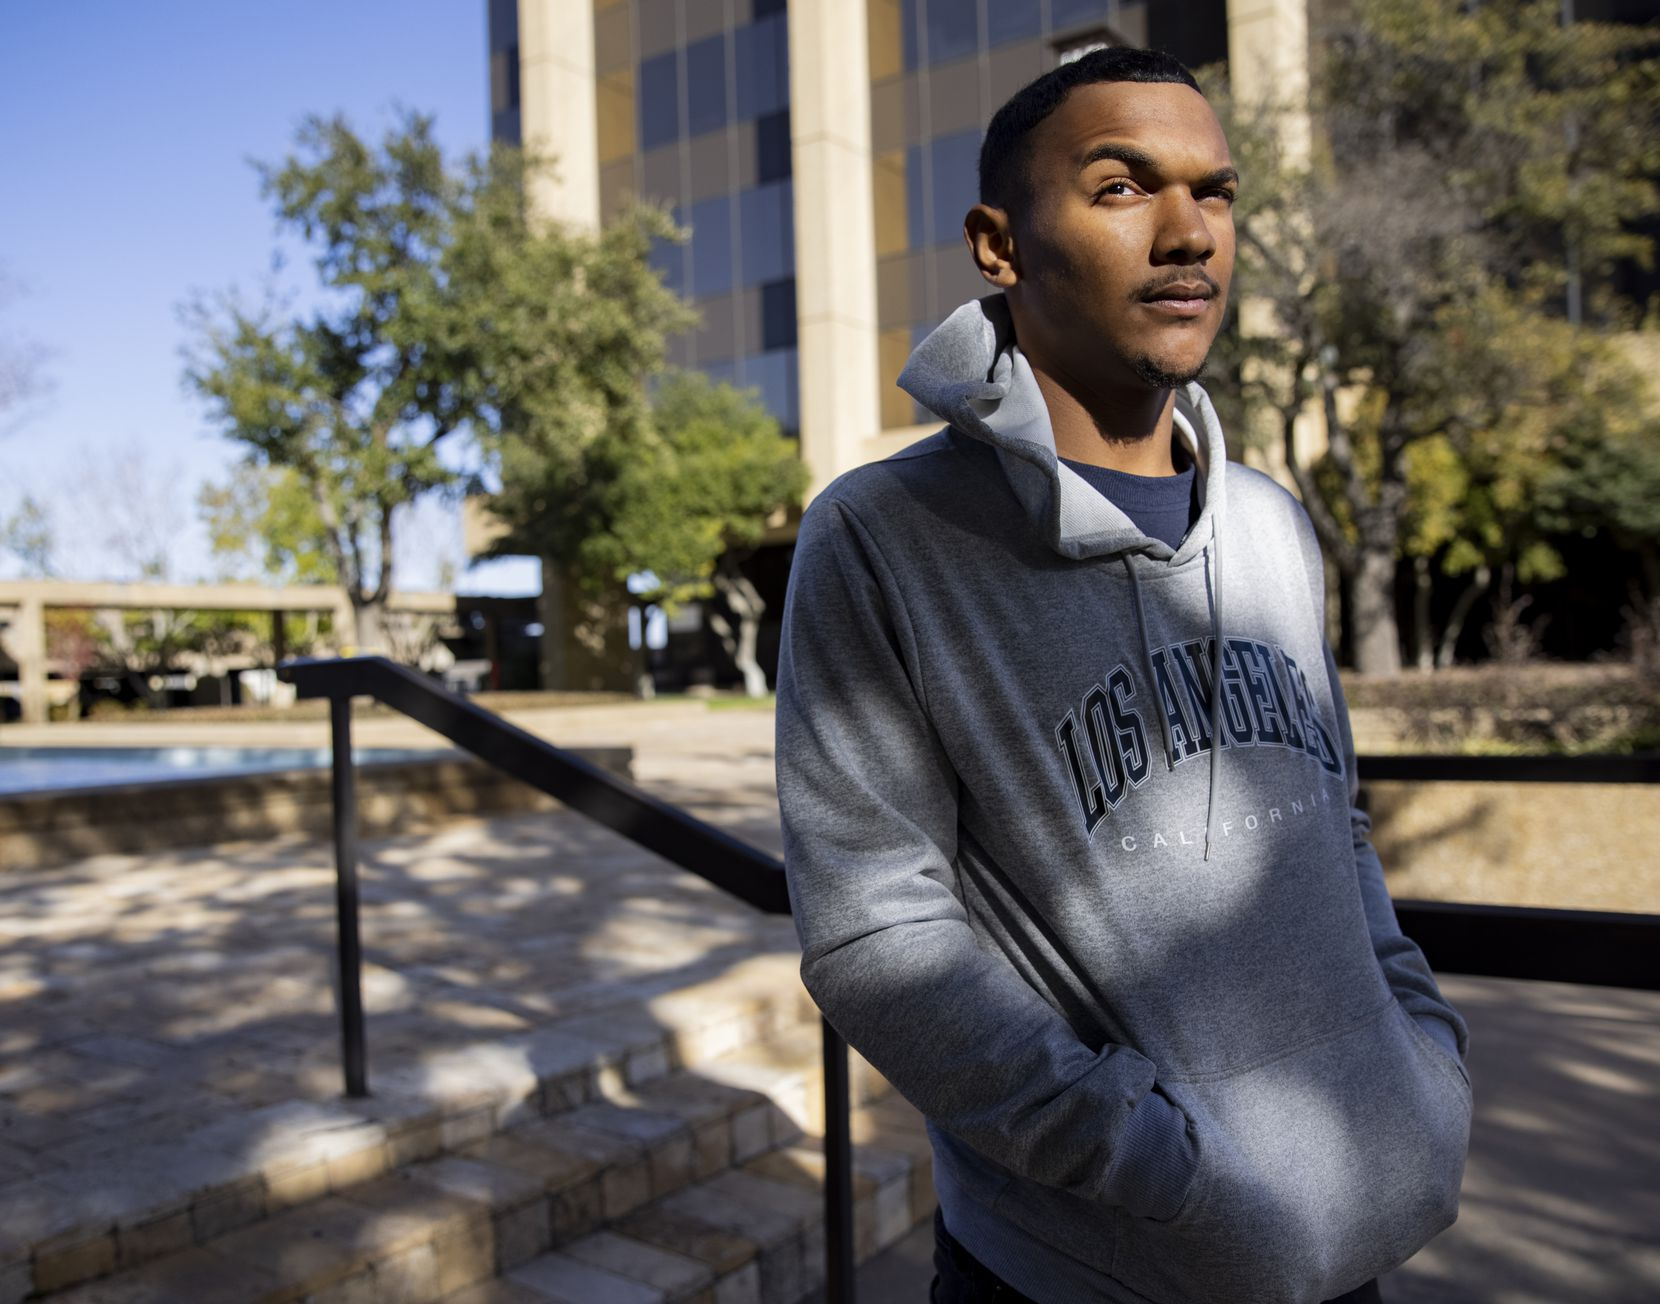 Neco Bonham, 18, posed for a photo outside of the law office of Damon Mathias in Dallas on Jan. 15. Bonham is suing Richardson police in federal court for racial profiling and excessive force.